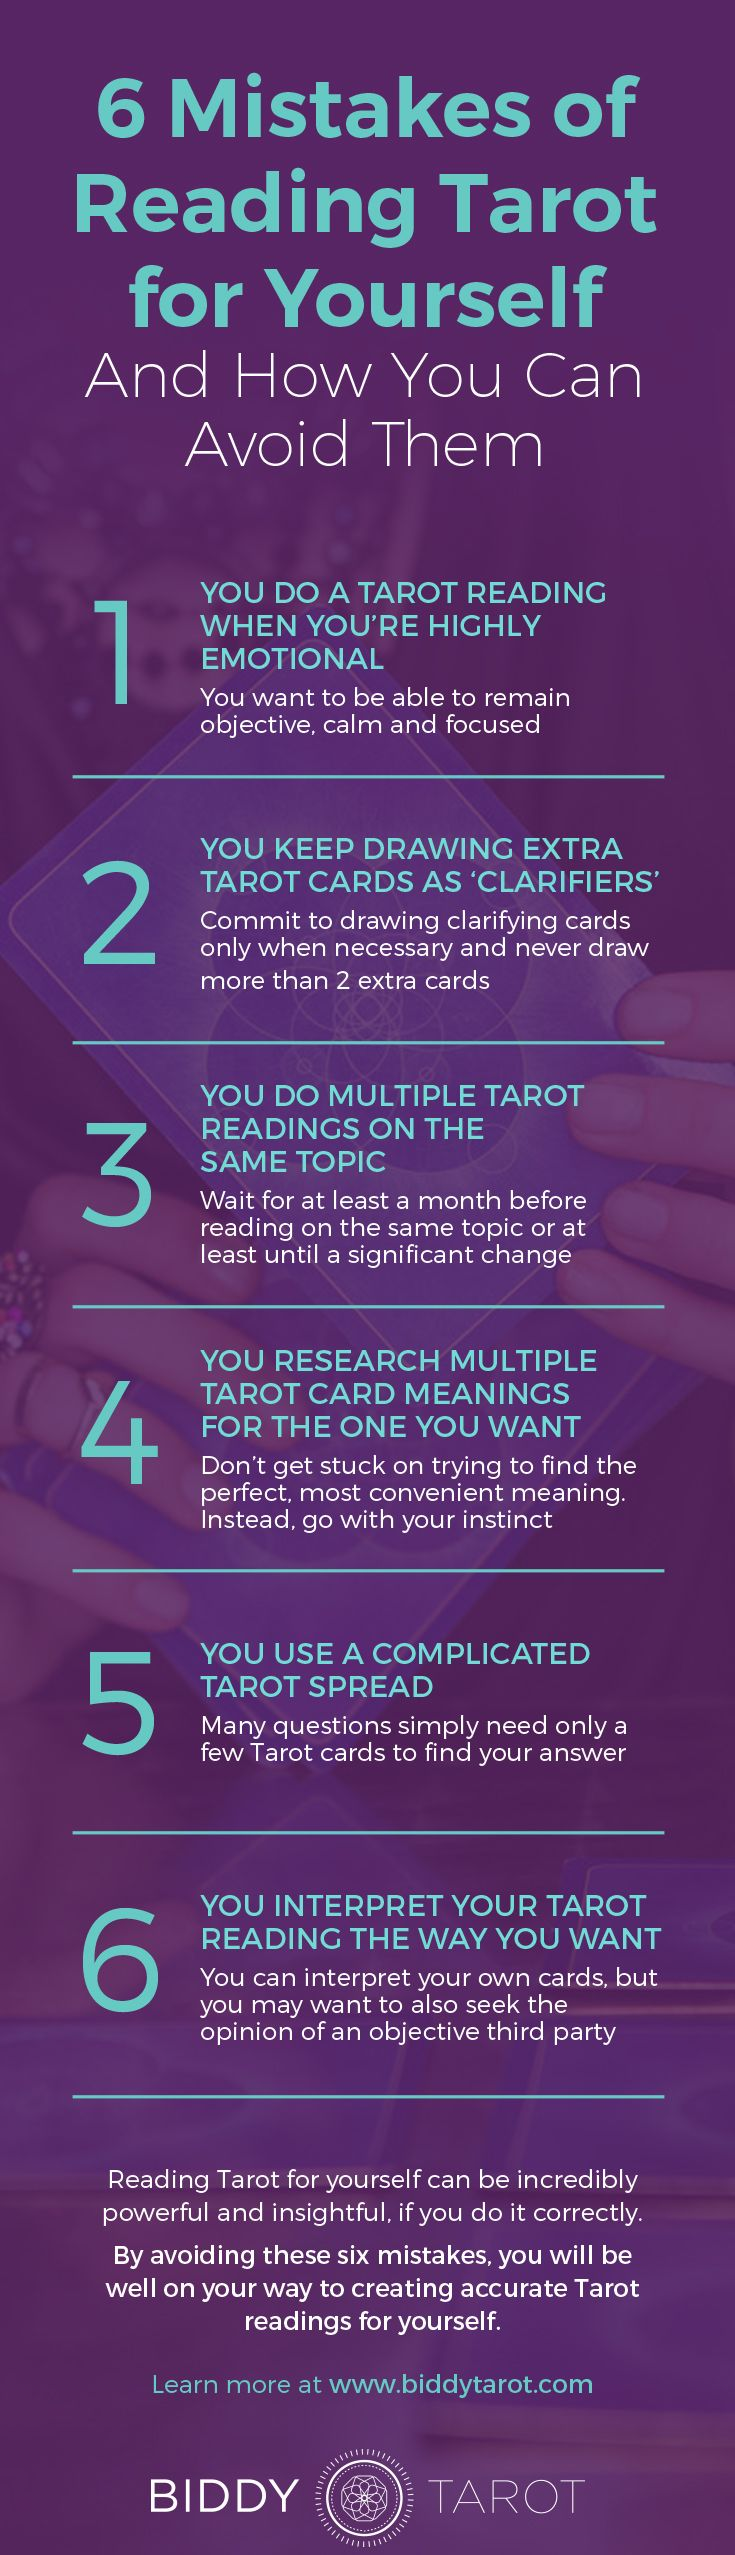 Learn the top 6 mistakes of reading tarot for yourself wiccan learn the top 6 mistakes of reading tarot for yourself solutioingenieria Images